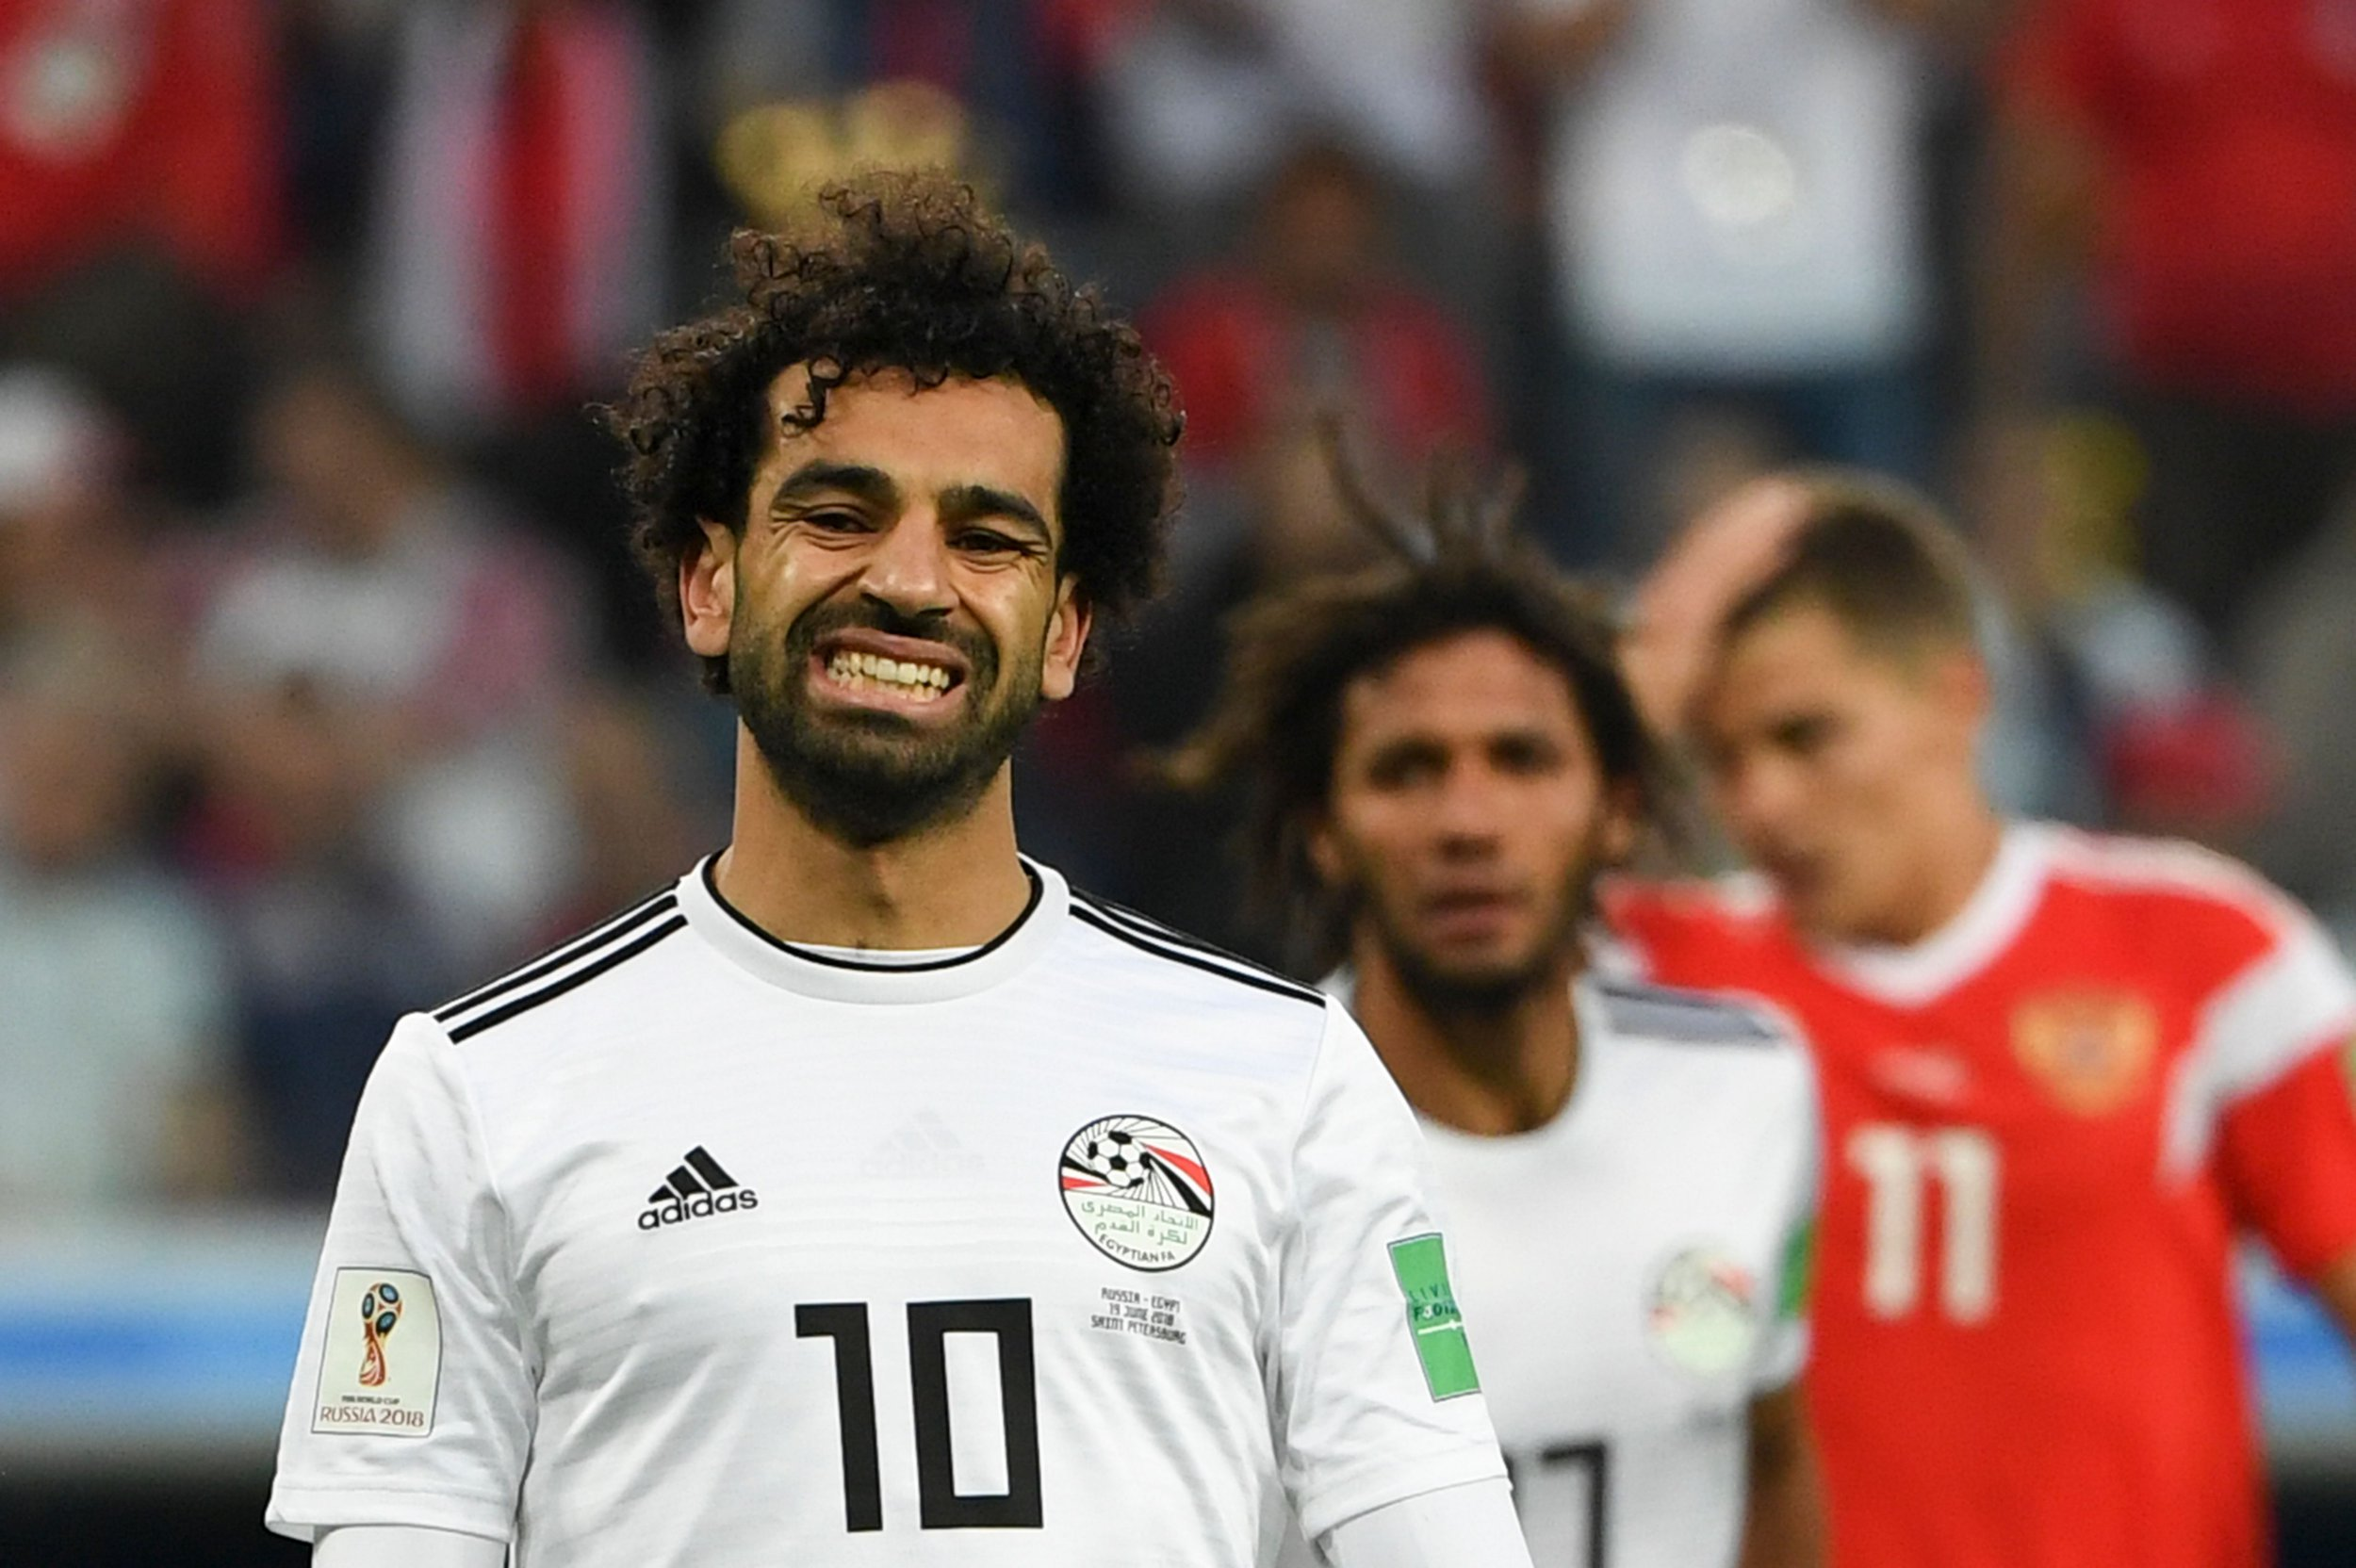 Mohamed Salah's World Cup dream all but over as rampant Russia defeat Egypt